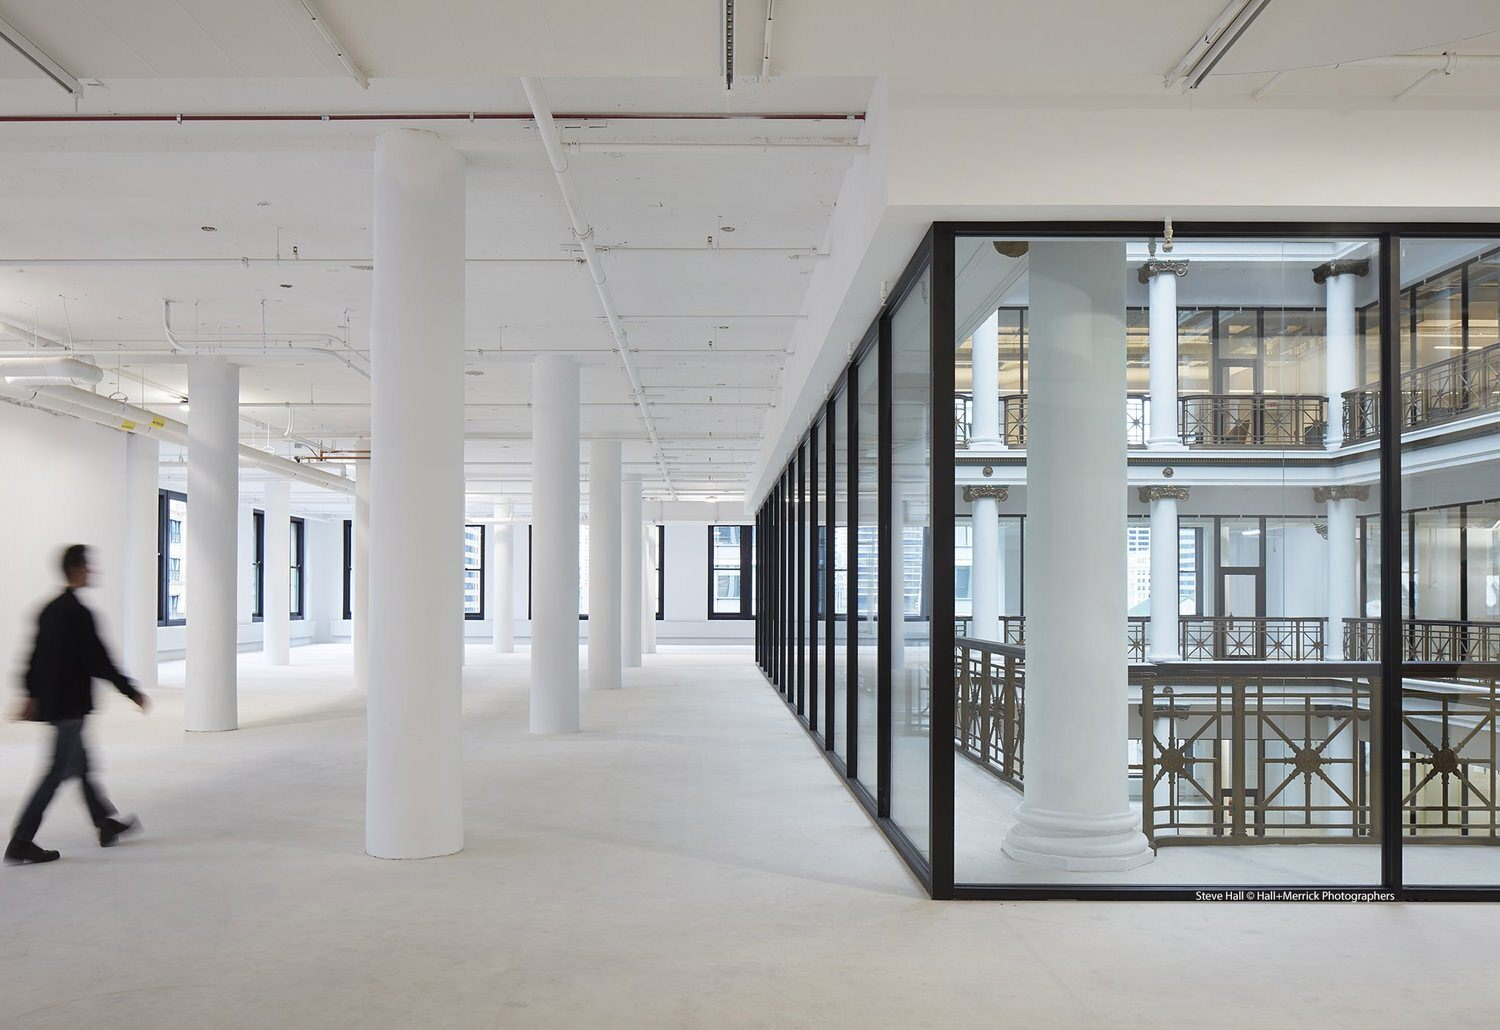 A person in a suit is walking in an empty white building with a glass interior and white columns.